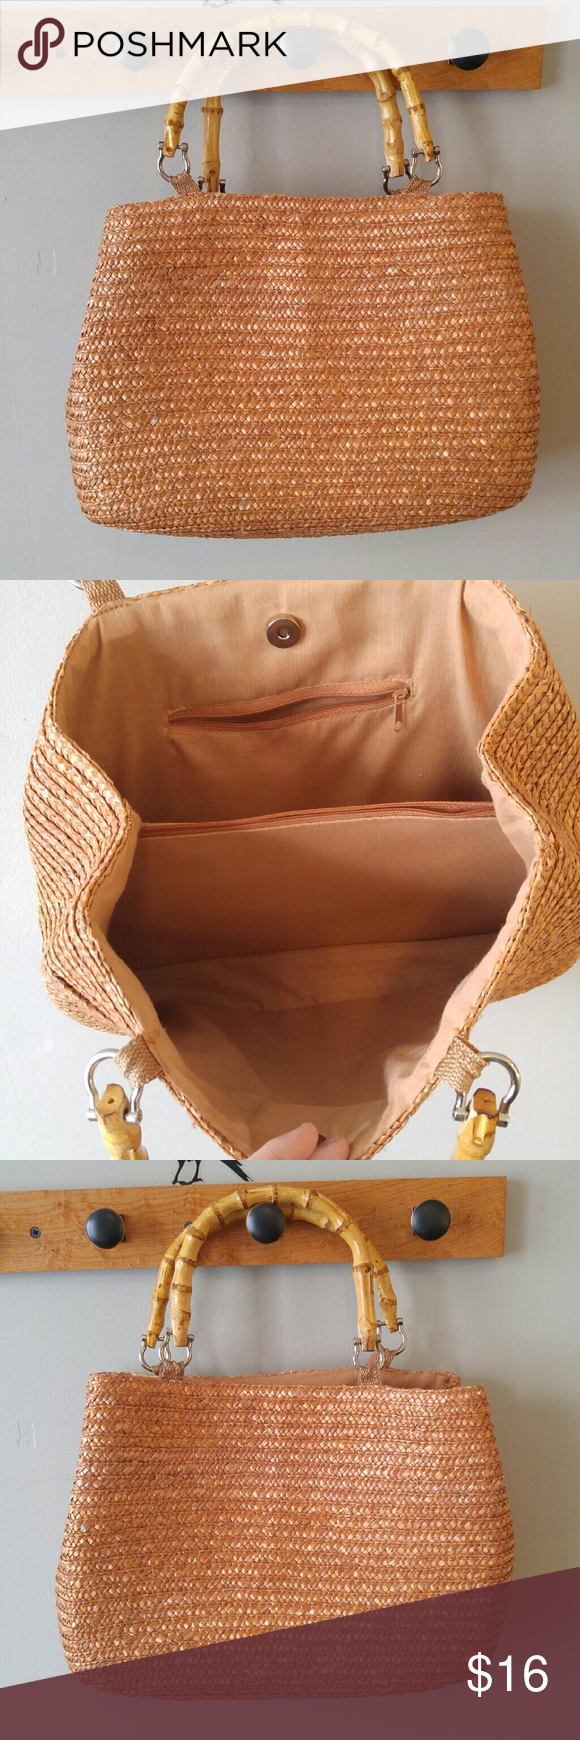 587fb6e5e2120b Rose gold straw tote bag bamboo handles This pretty bag is made of woven  straw that is a coppery rose gold color! It has bamboo handles. The top  snaps shut.